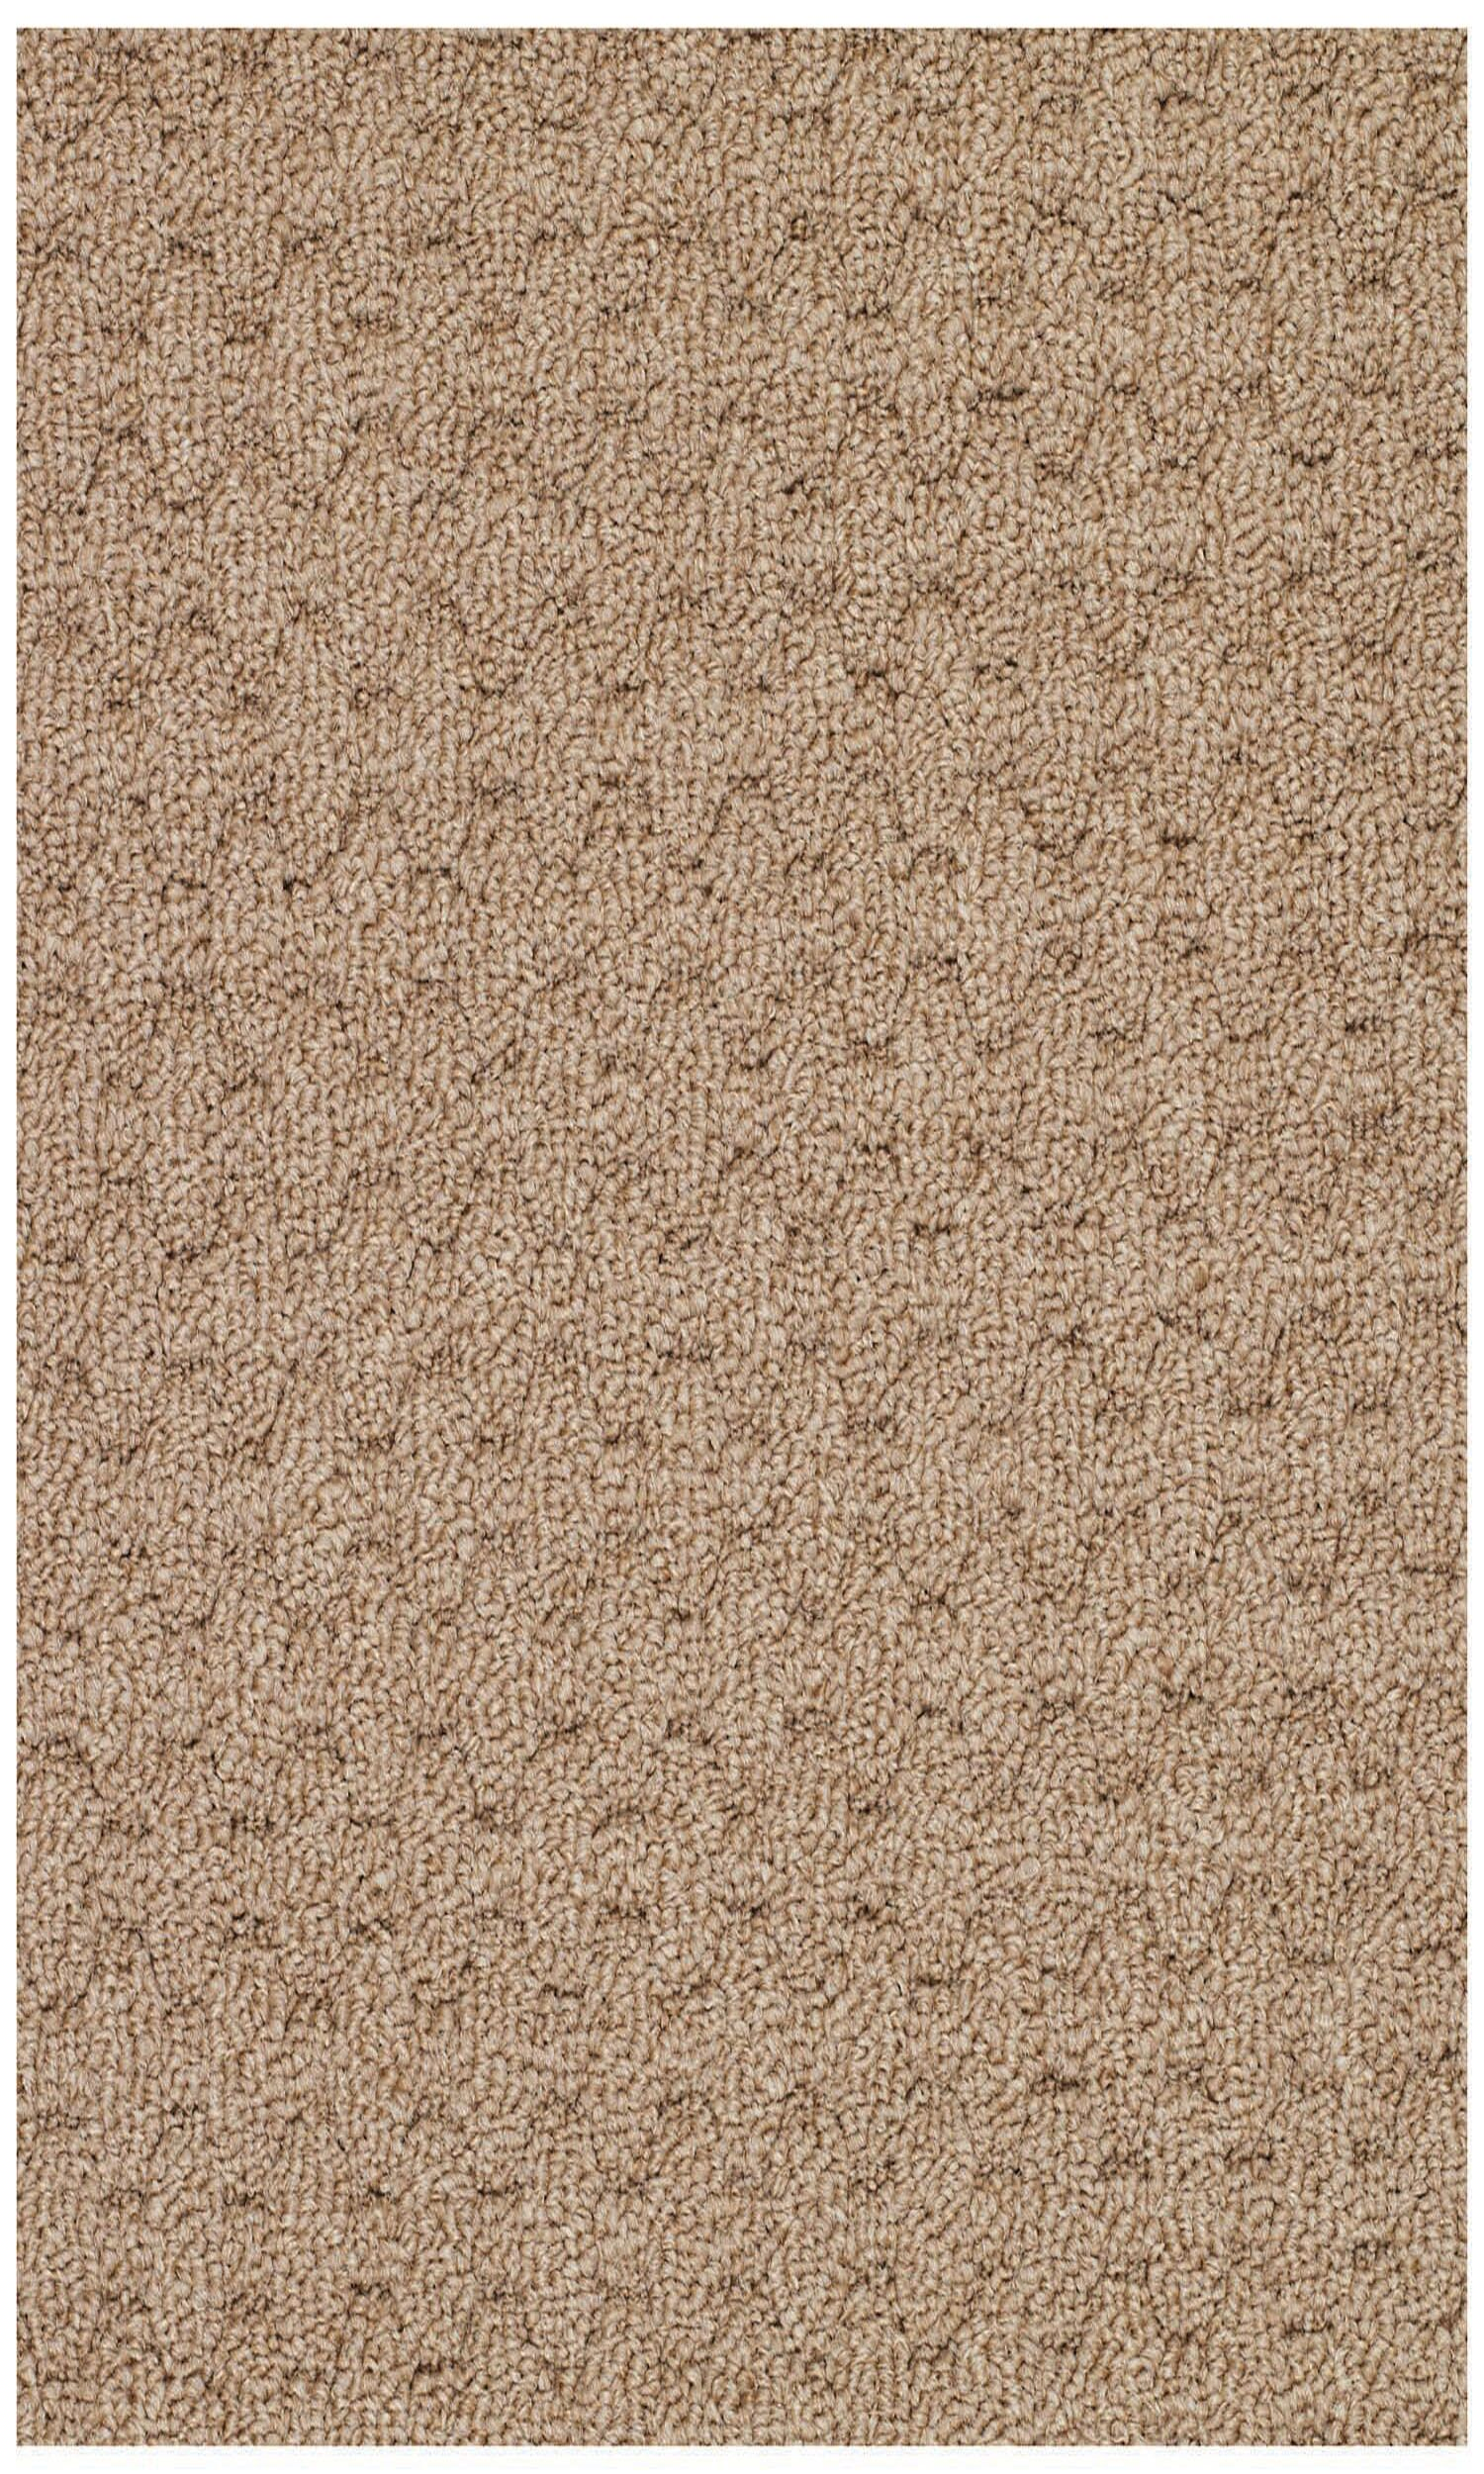 Shoal Machine Woven Indoor/Outdoor Area Rug Rug Size: Rectangle 3' x 5'